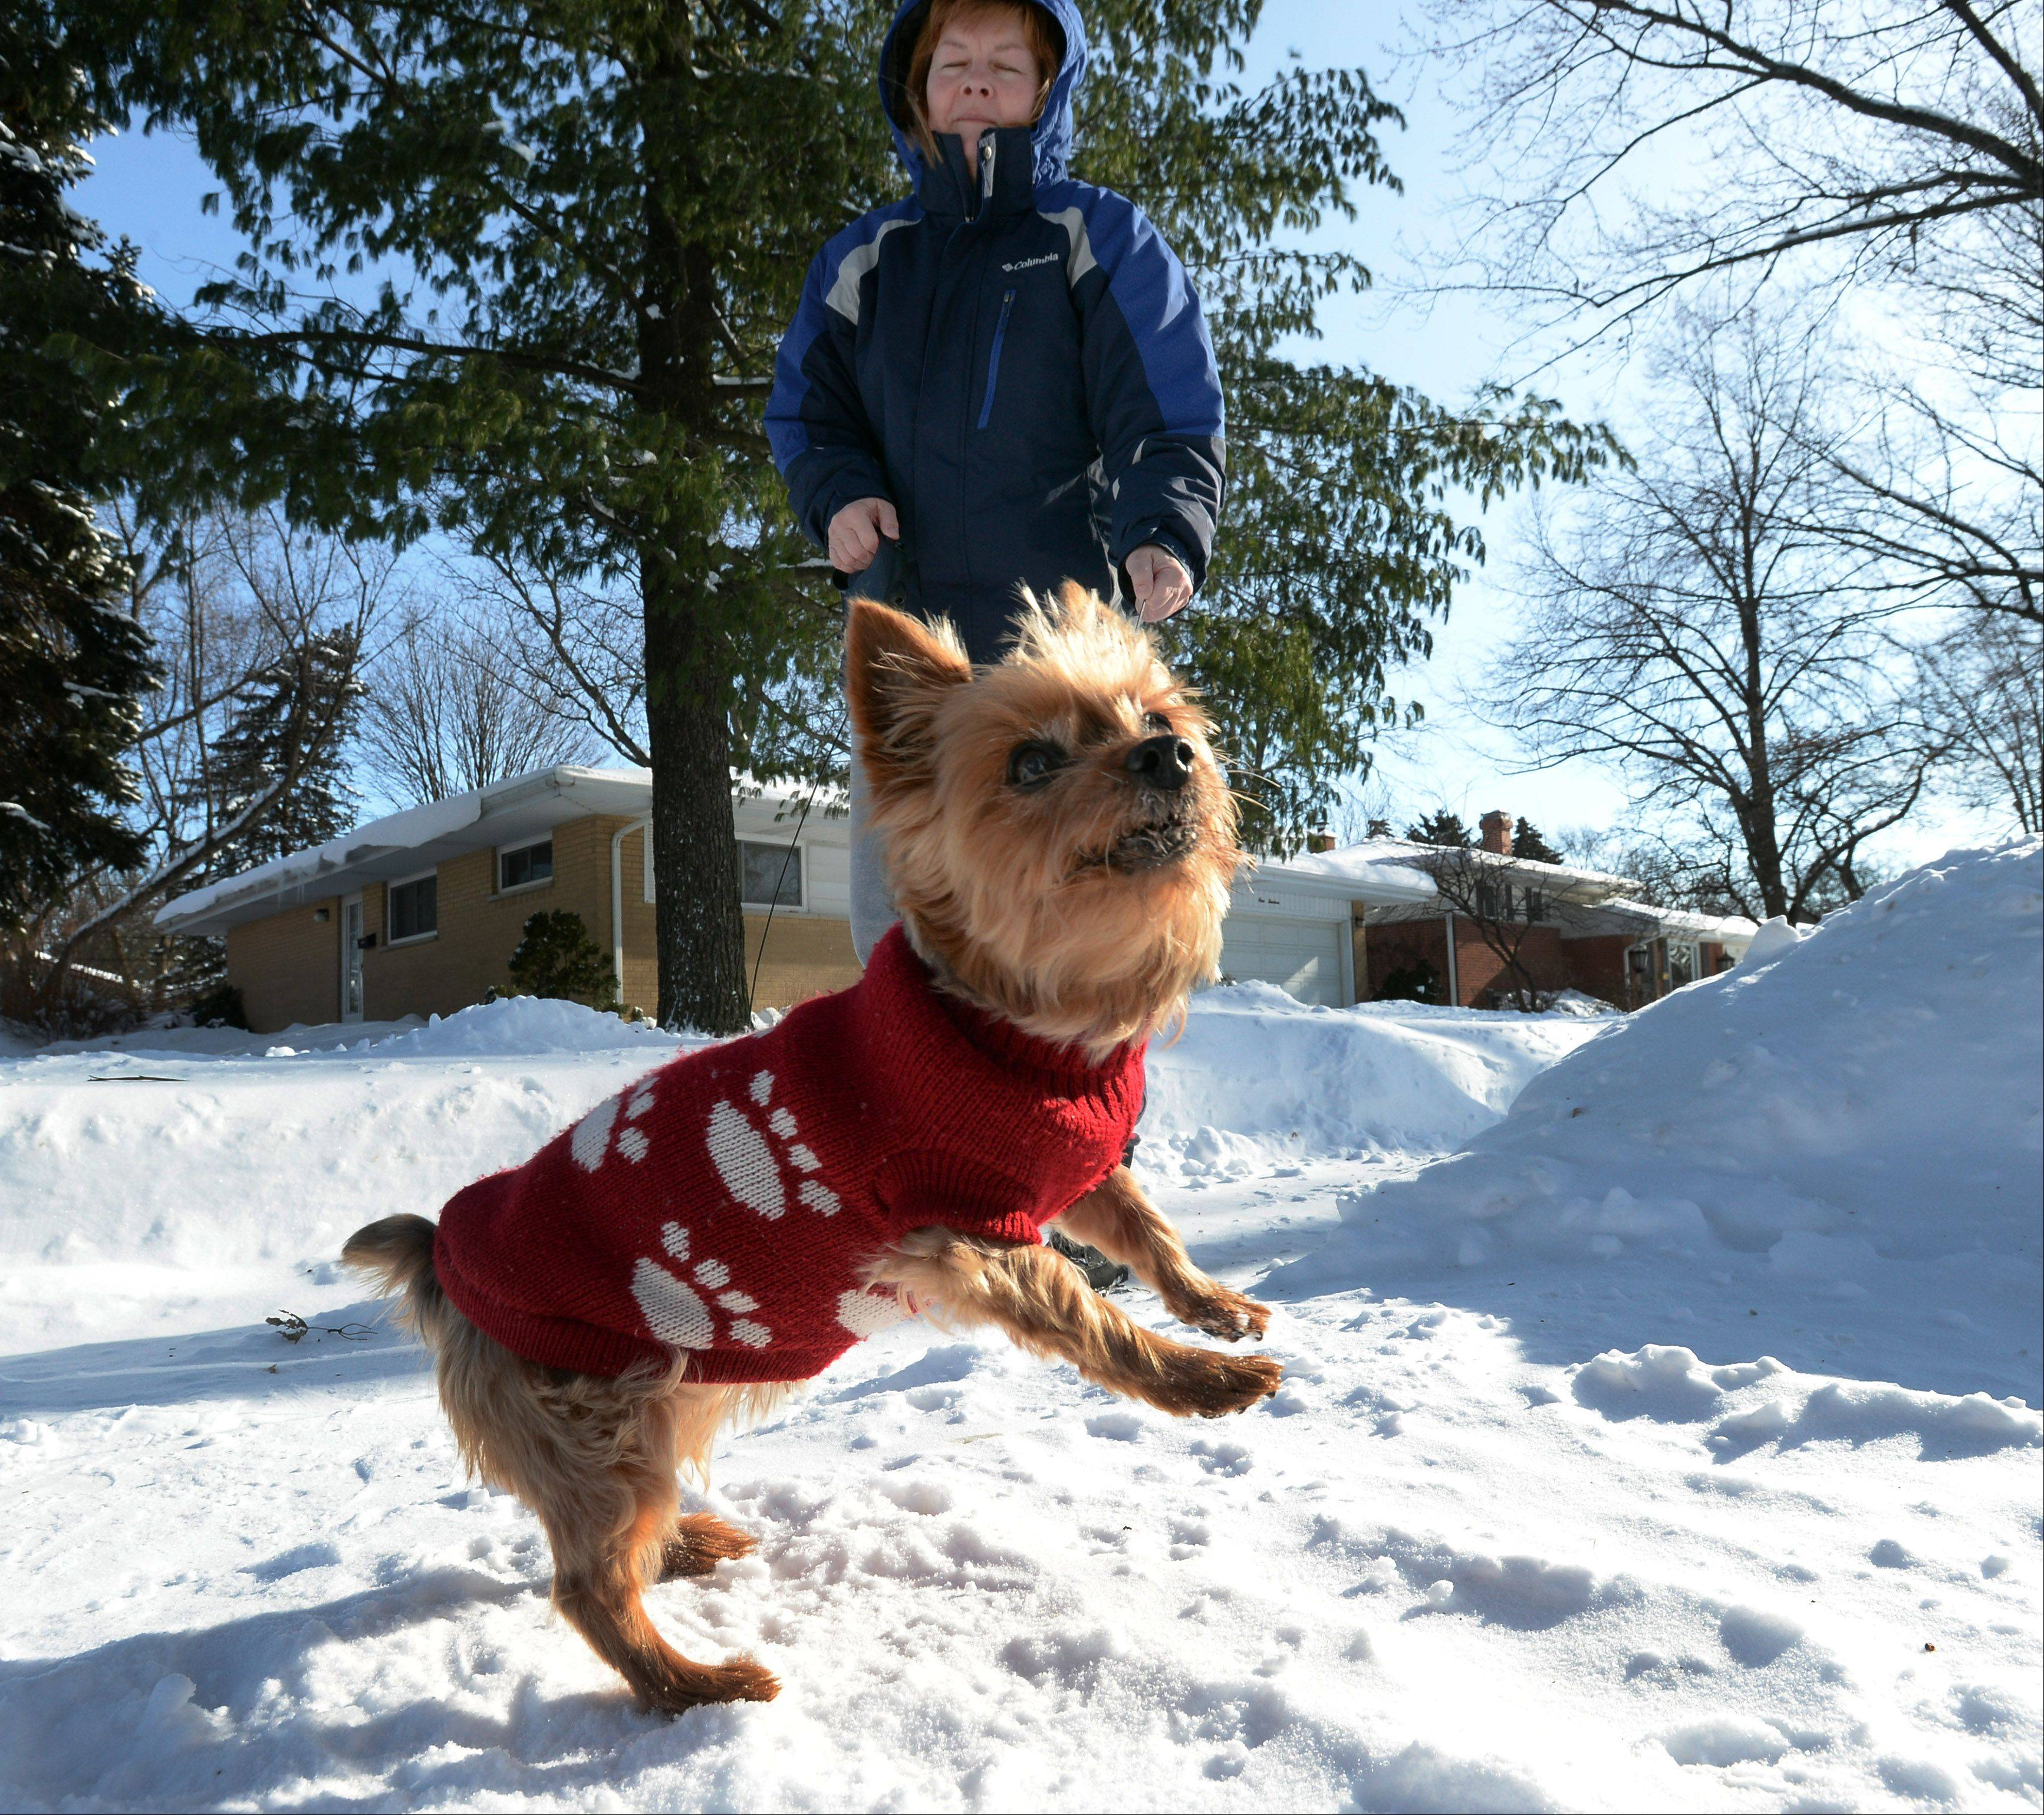 Keep pets inside; watch for 'hidden dangers' in snow